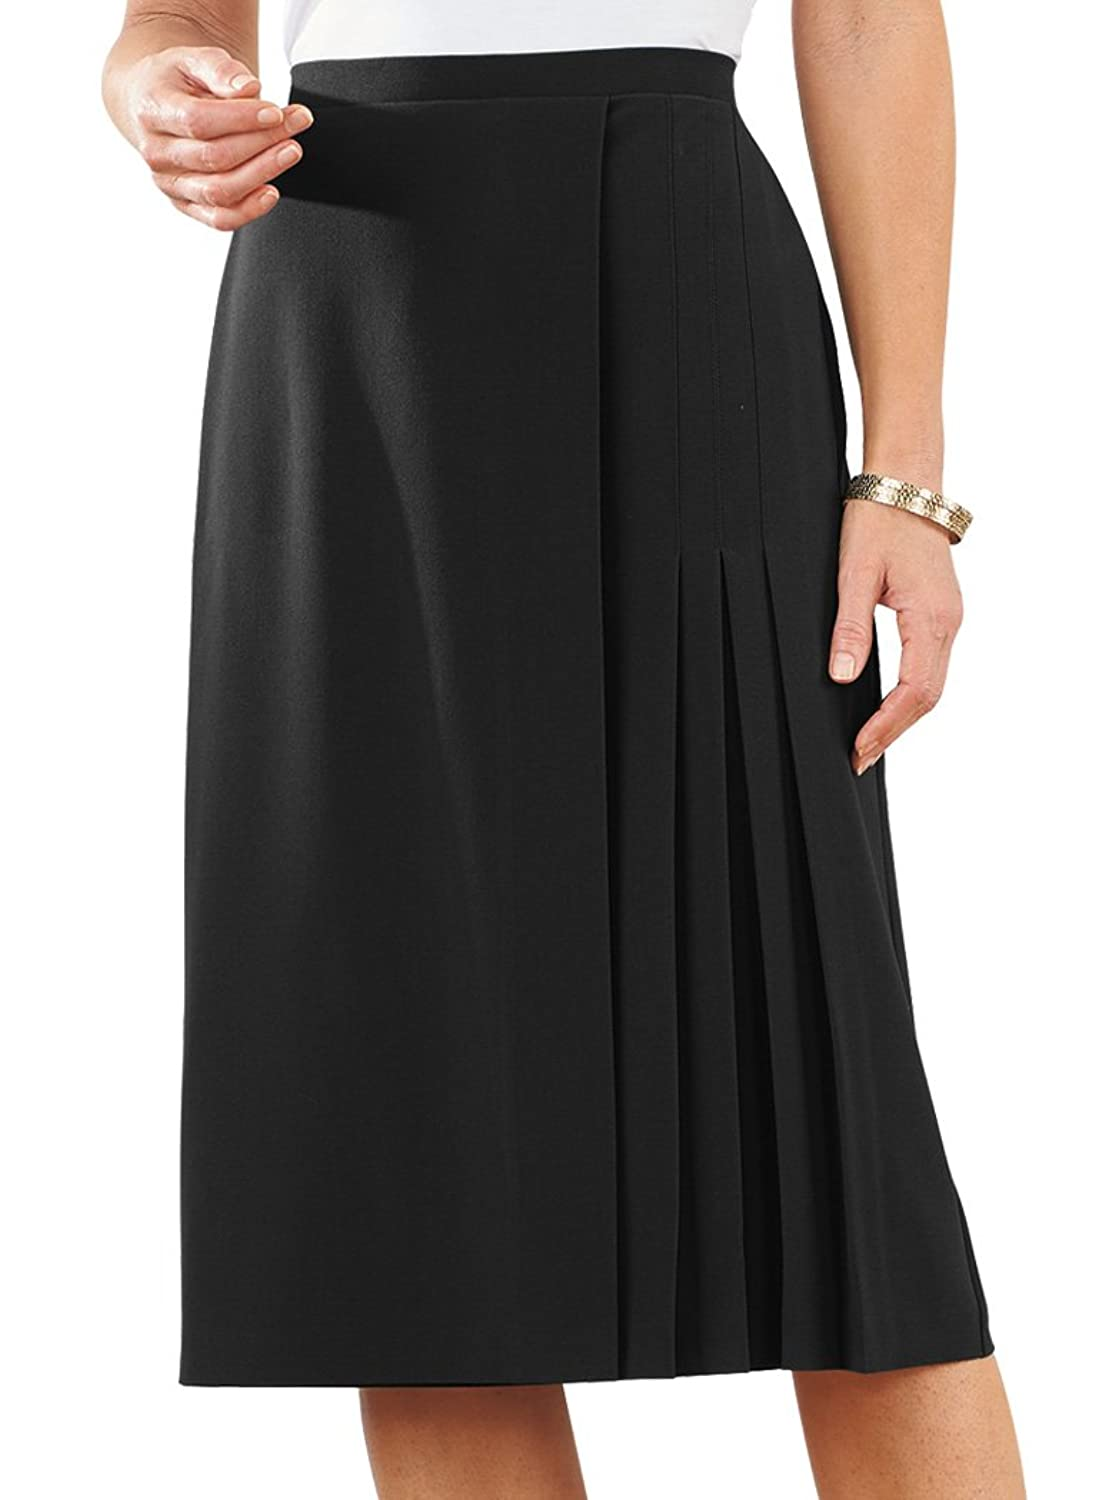 1930s Style Skirts : Midi Skirts, Tea Length, Pleated Faux Wrap Skirt $31.99 AT vintagedancer.com